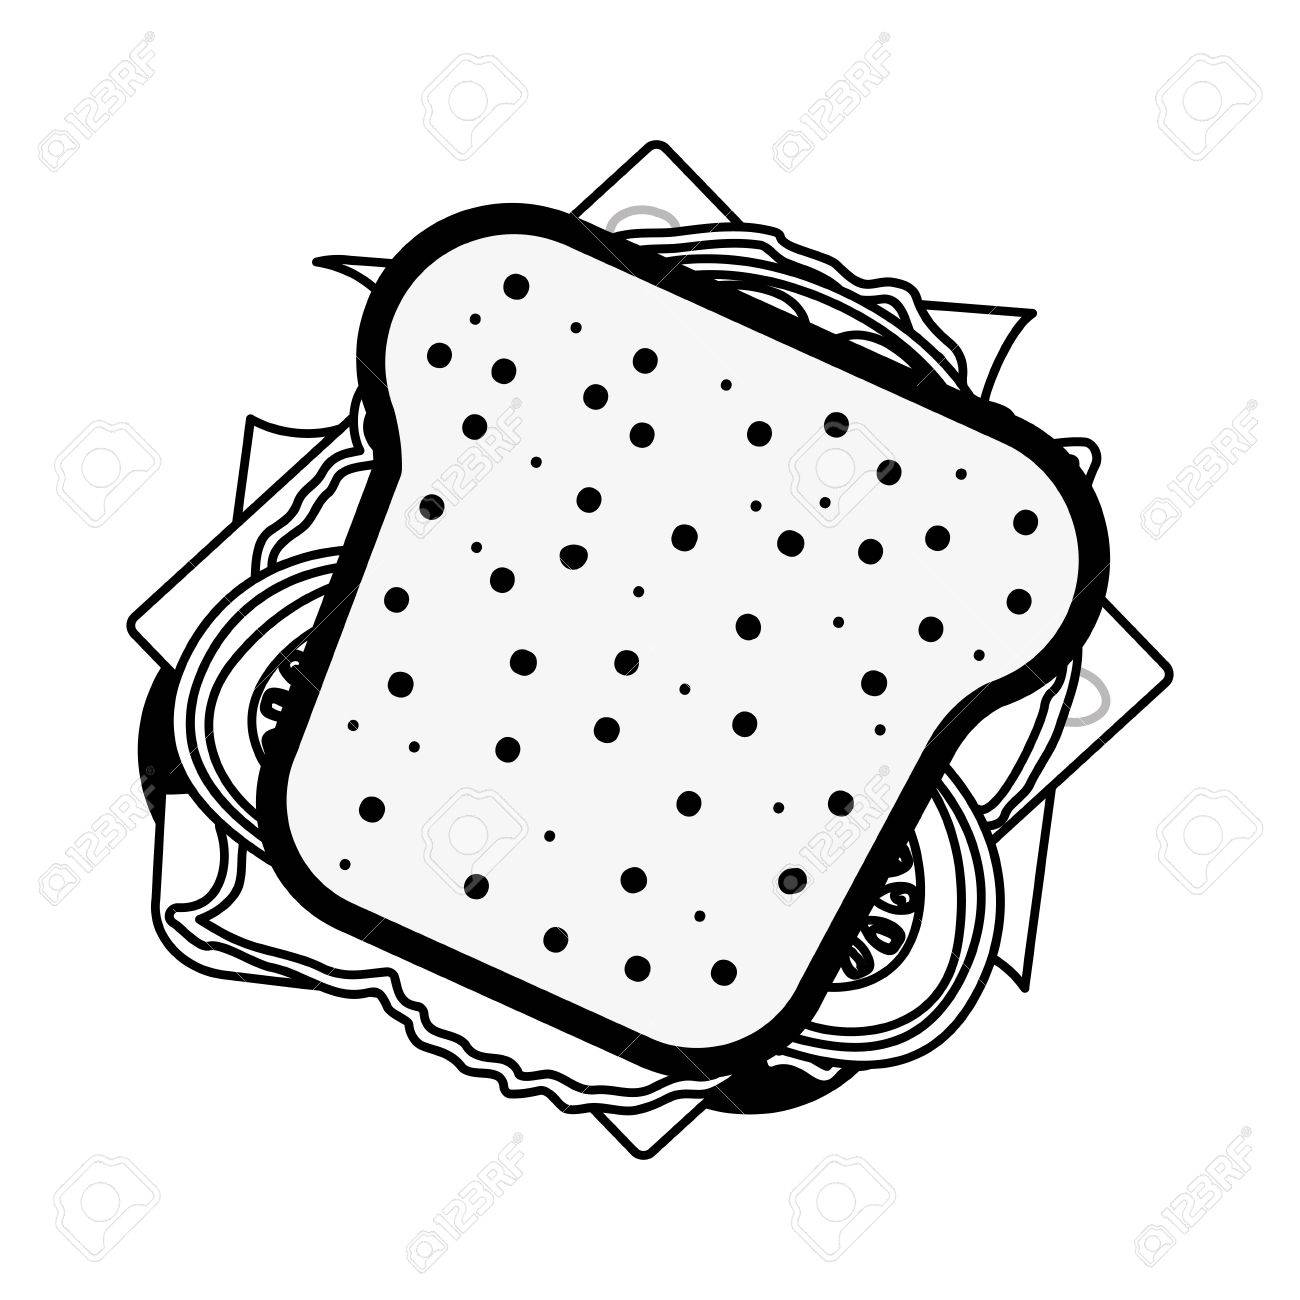 Sandwich Clipart Black And White